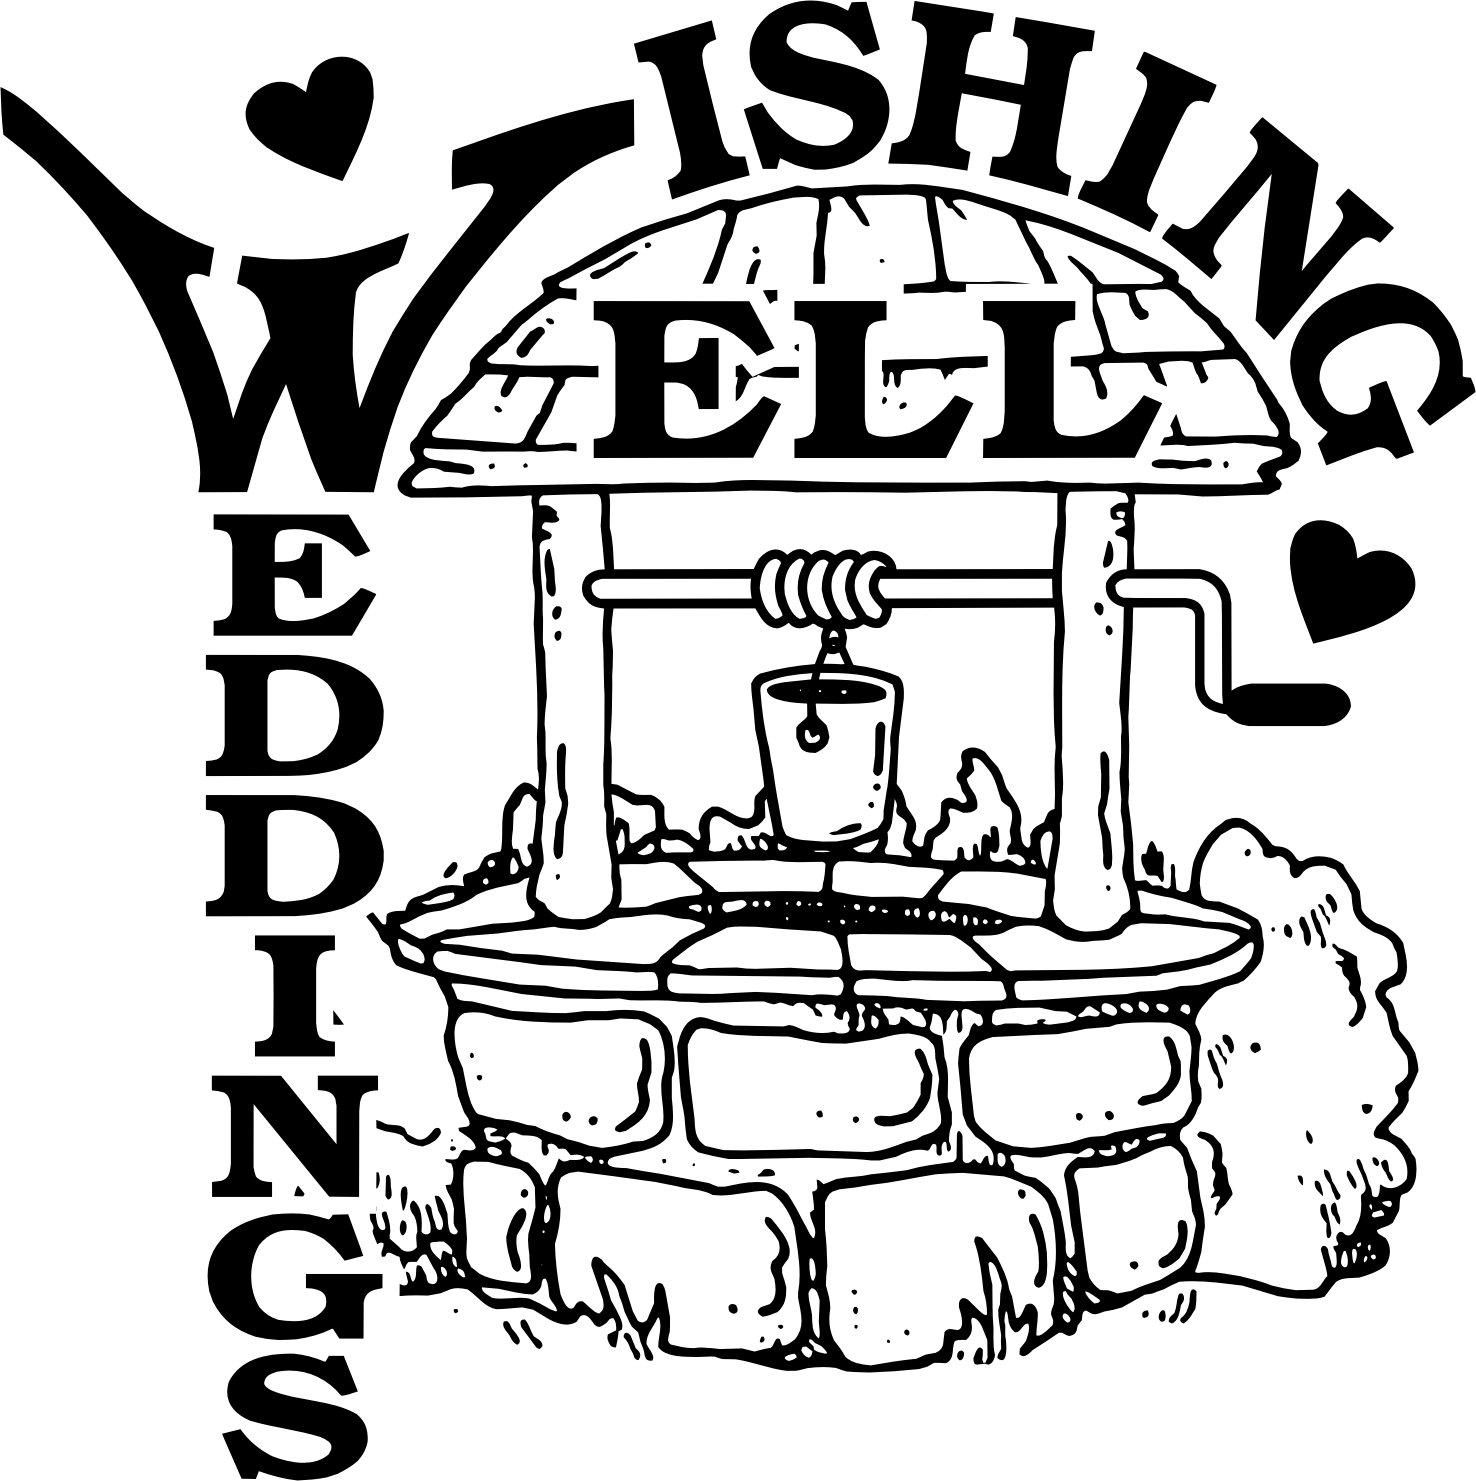 Wishing Well Images   Clipart Best